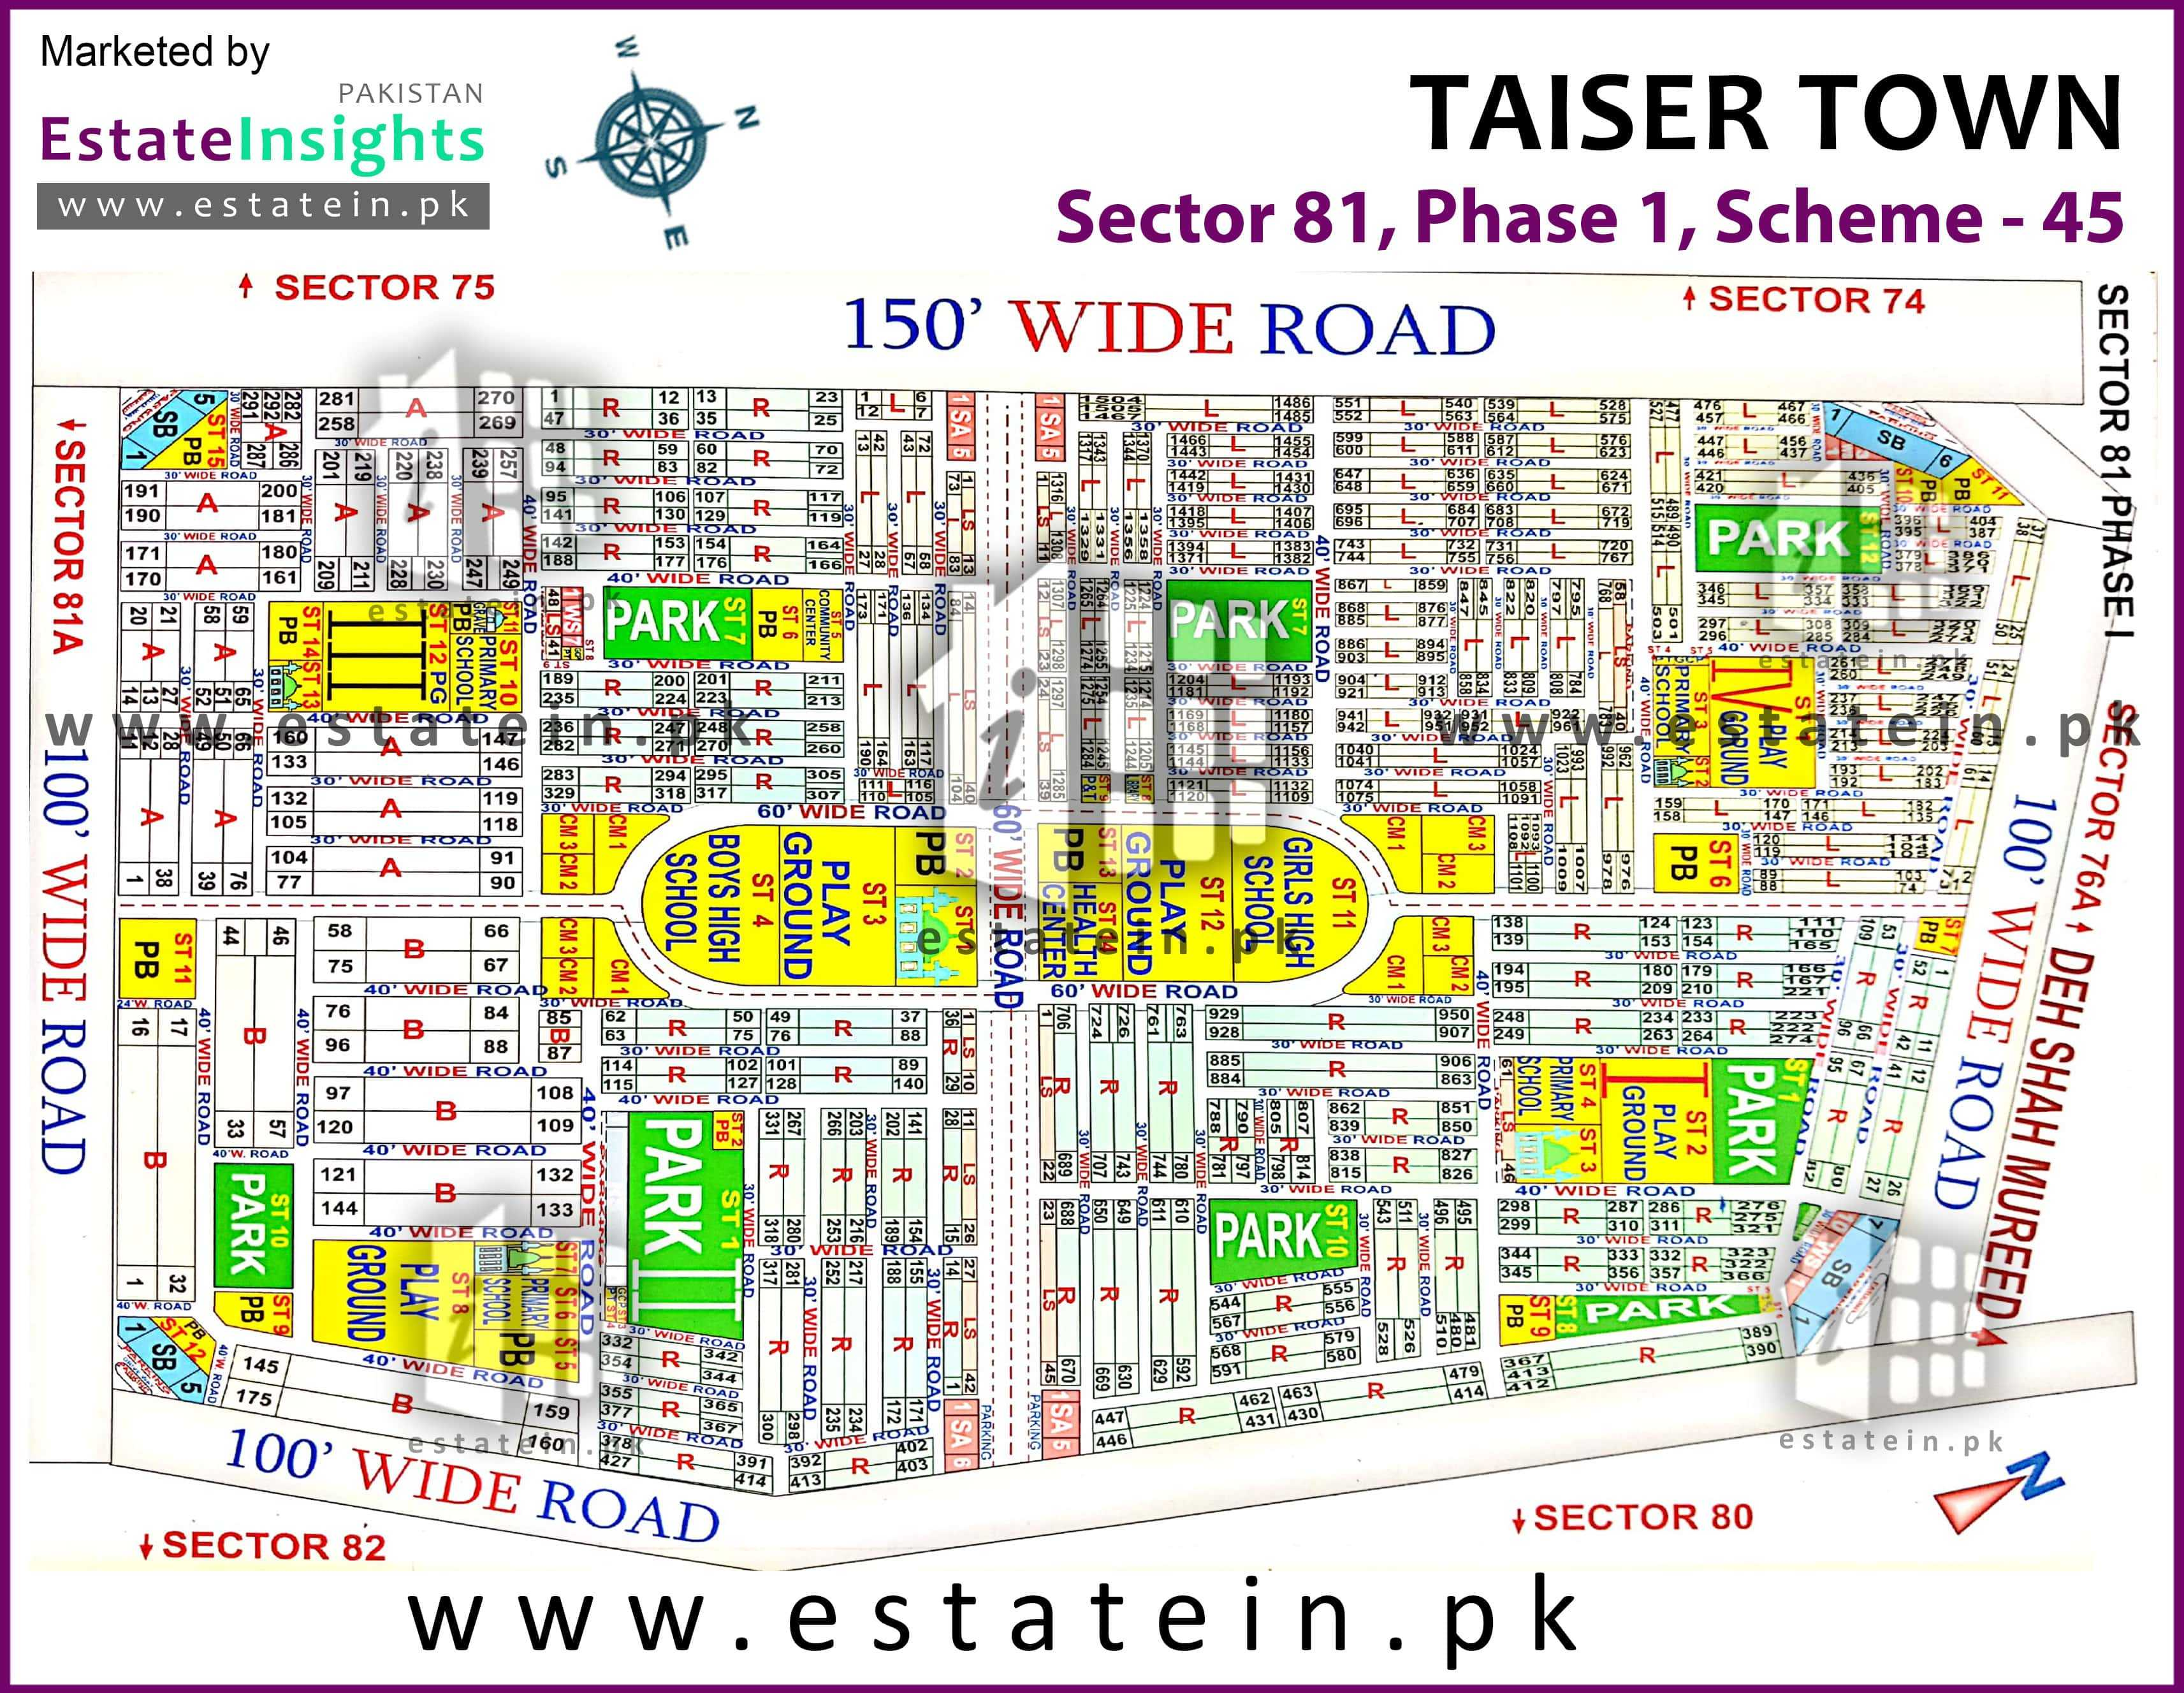 Site Plan of Sector 81 of Taiser Town Phase I